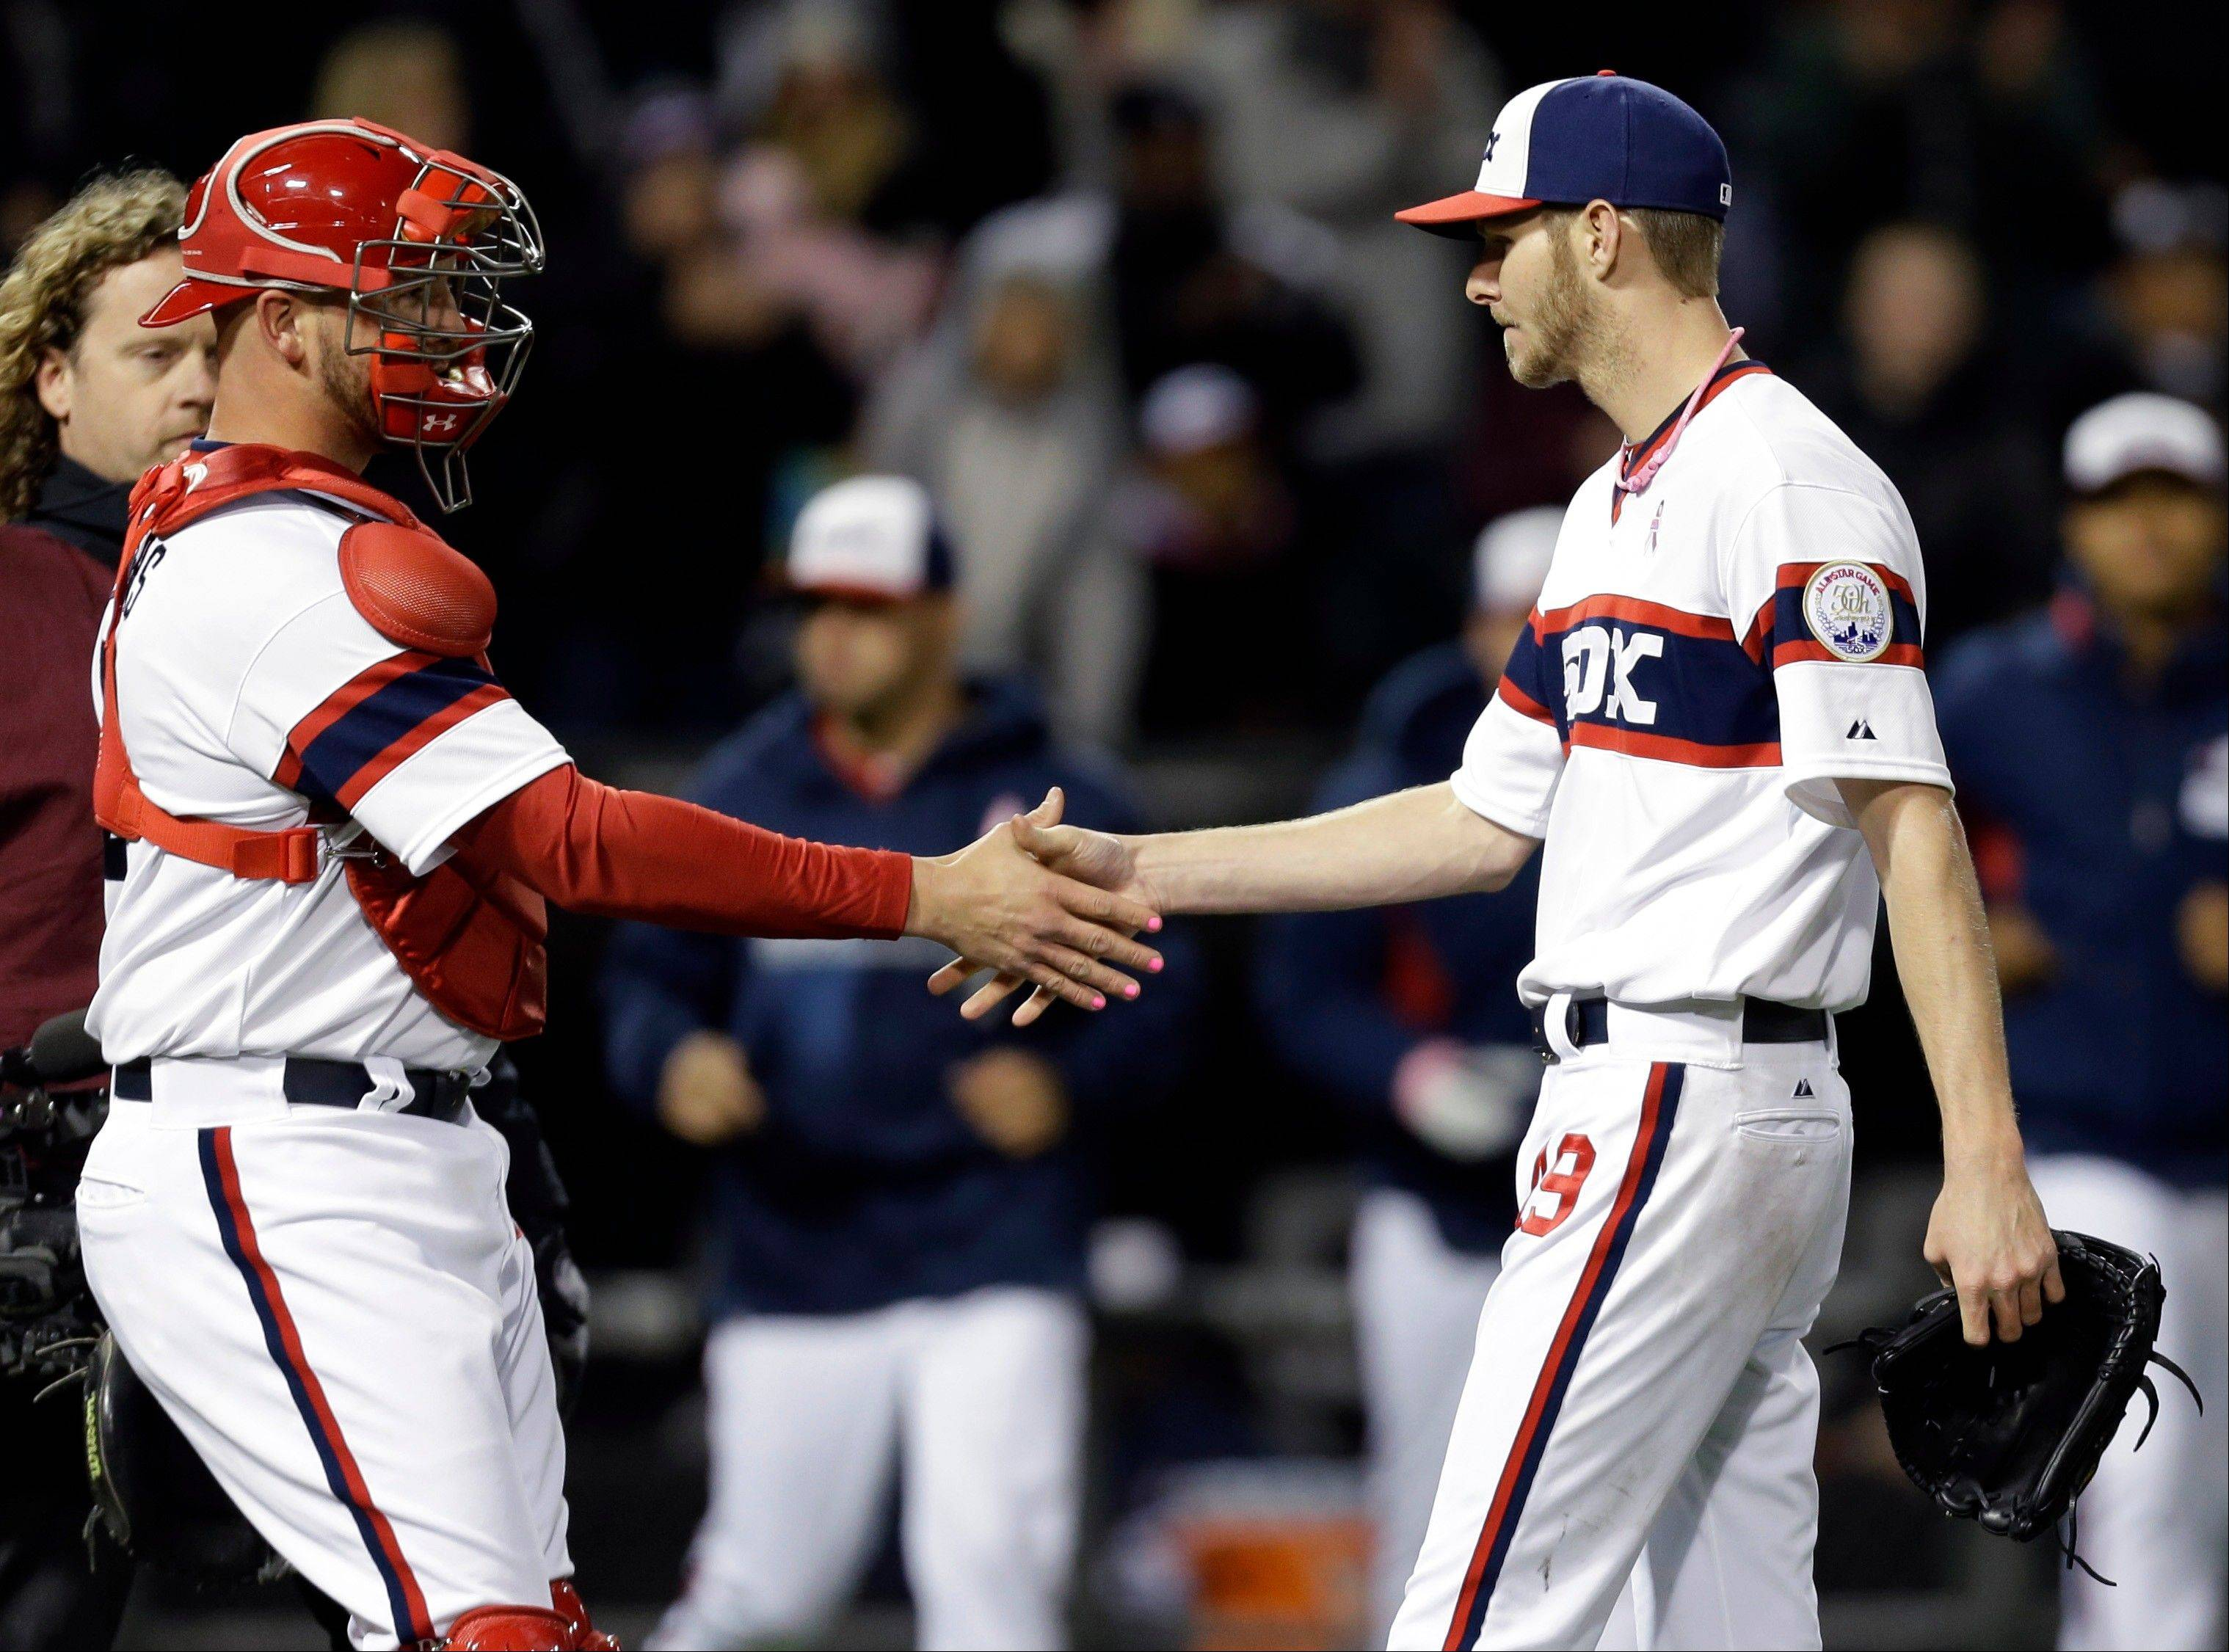 Chicago White Sox starter Chris Sale, right, celebrates with catcher Tyler Flowers after the White Sox defeated the Los Angeles Angels 3-0 in a baseball game Sunday in Chicago. Sale pitched the first complete shutout of his career Sunday night, a 1-hit gem over the Angels. Alexei Ramirez's clutch 2-run single in the seventh inning also helped spark the White Sox to a 3-0 win.